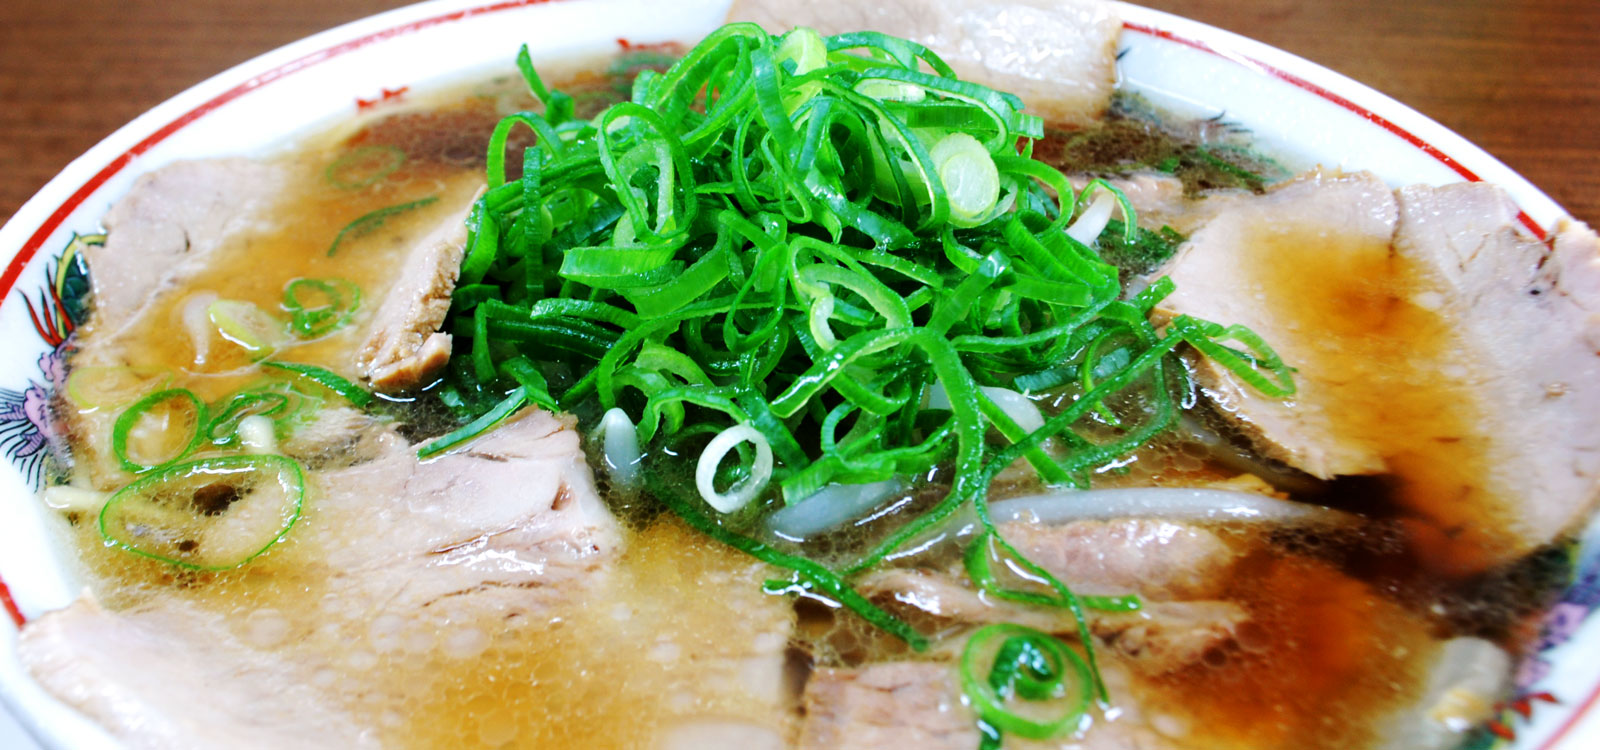 Established in 1947 ORIGINAL TONKOTSU SHOUYU SOUP